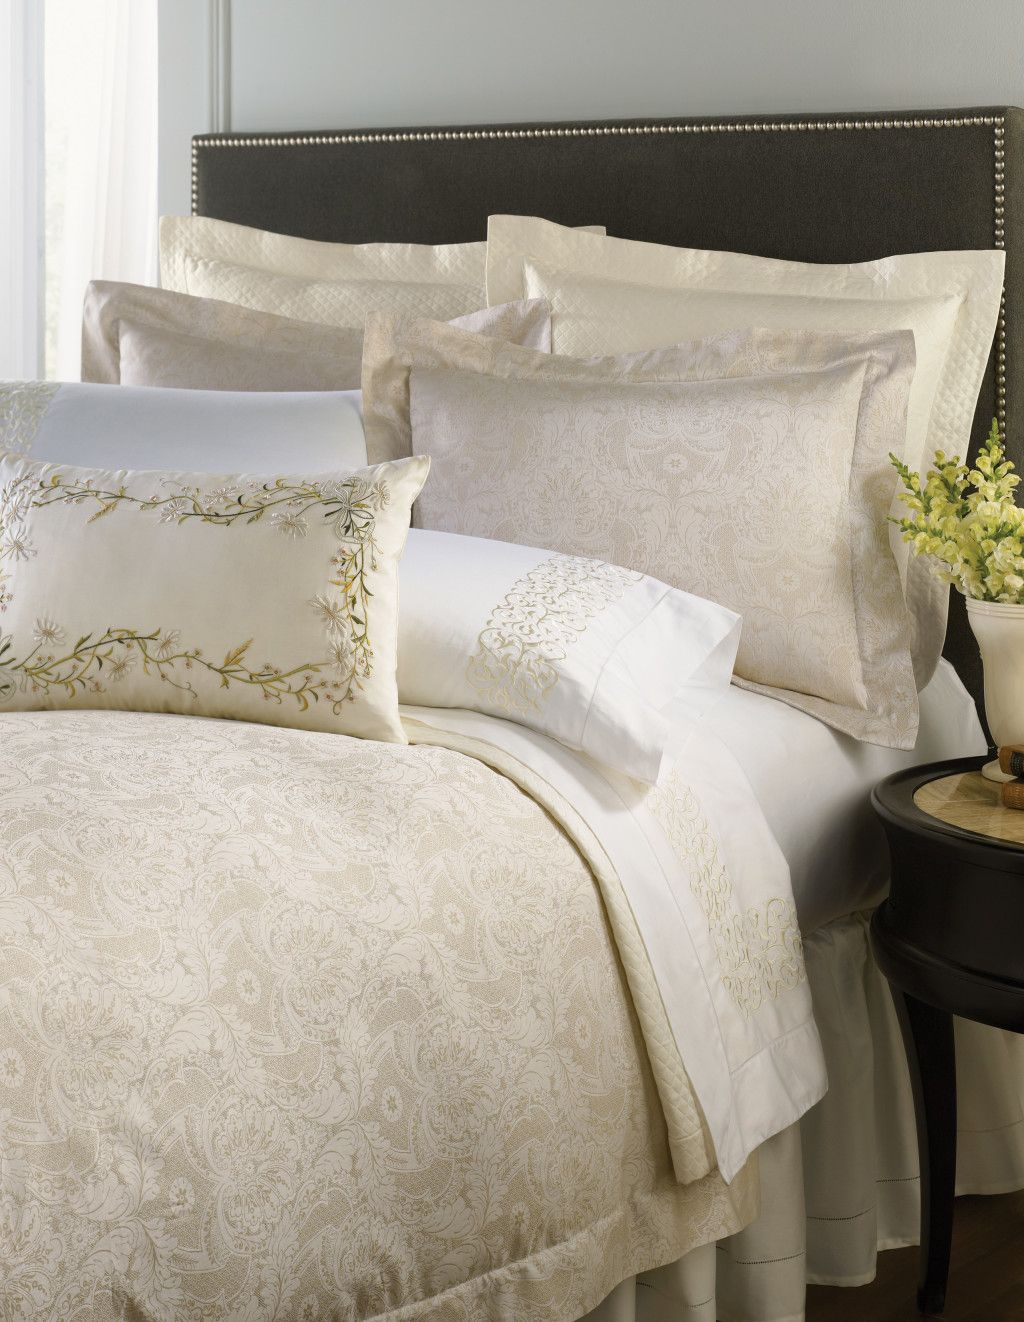 bedroom comforter sets queen black and white bedding shabby chic  - bedroom comforter sets queen black and white bedding shabby chic beddingqueen comforter sets sferra